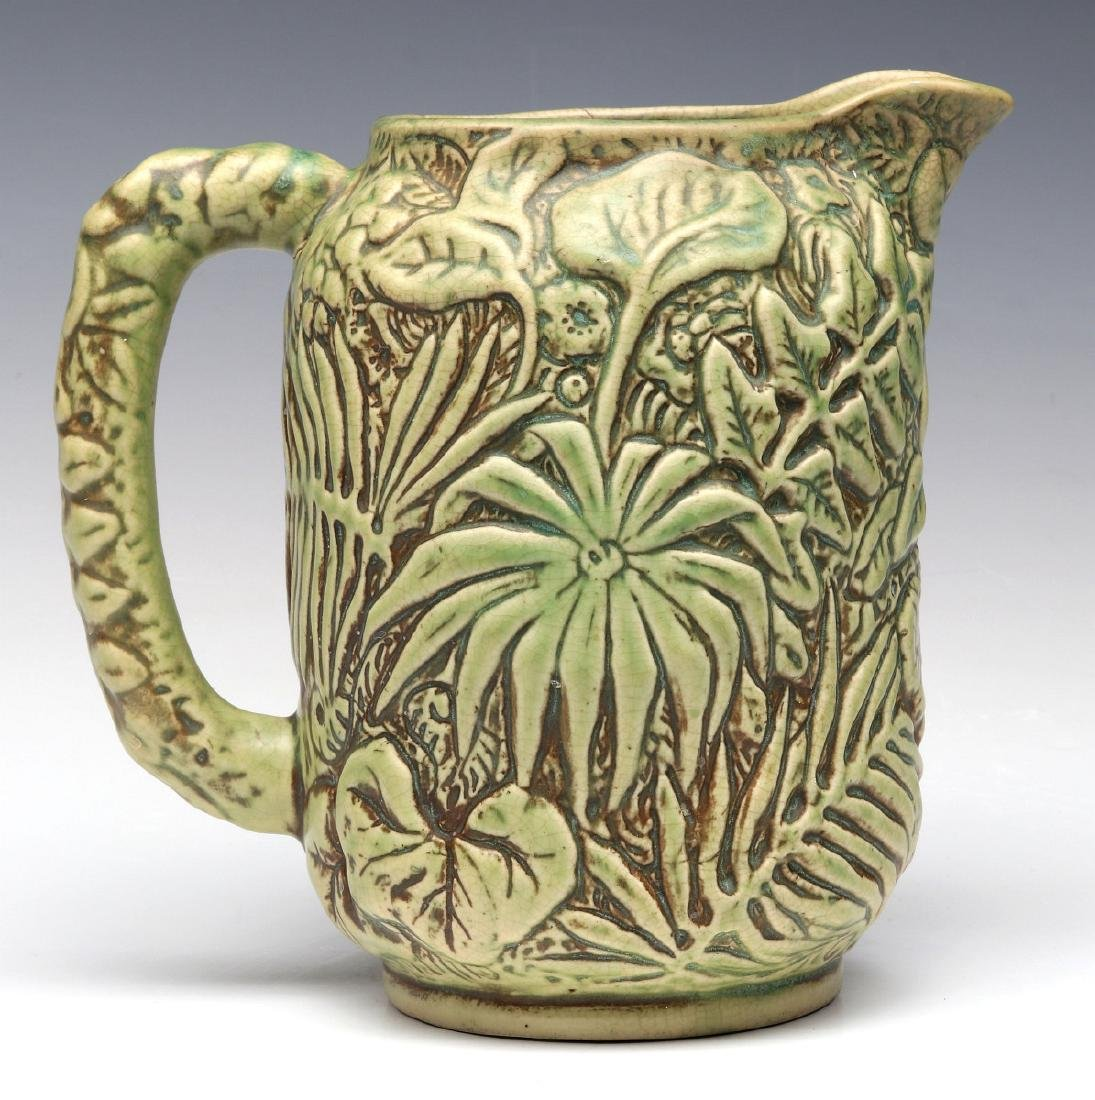 A WELLER 'MARVO' ART POTTERY PITCHER